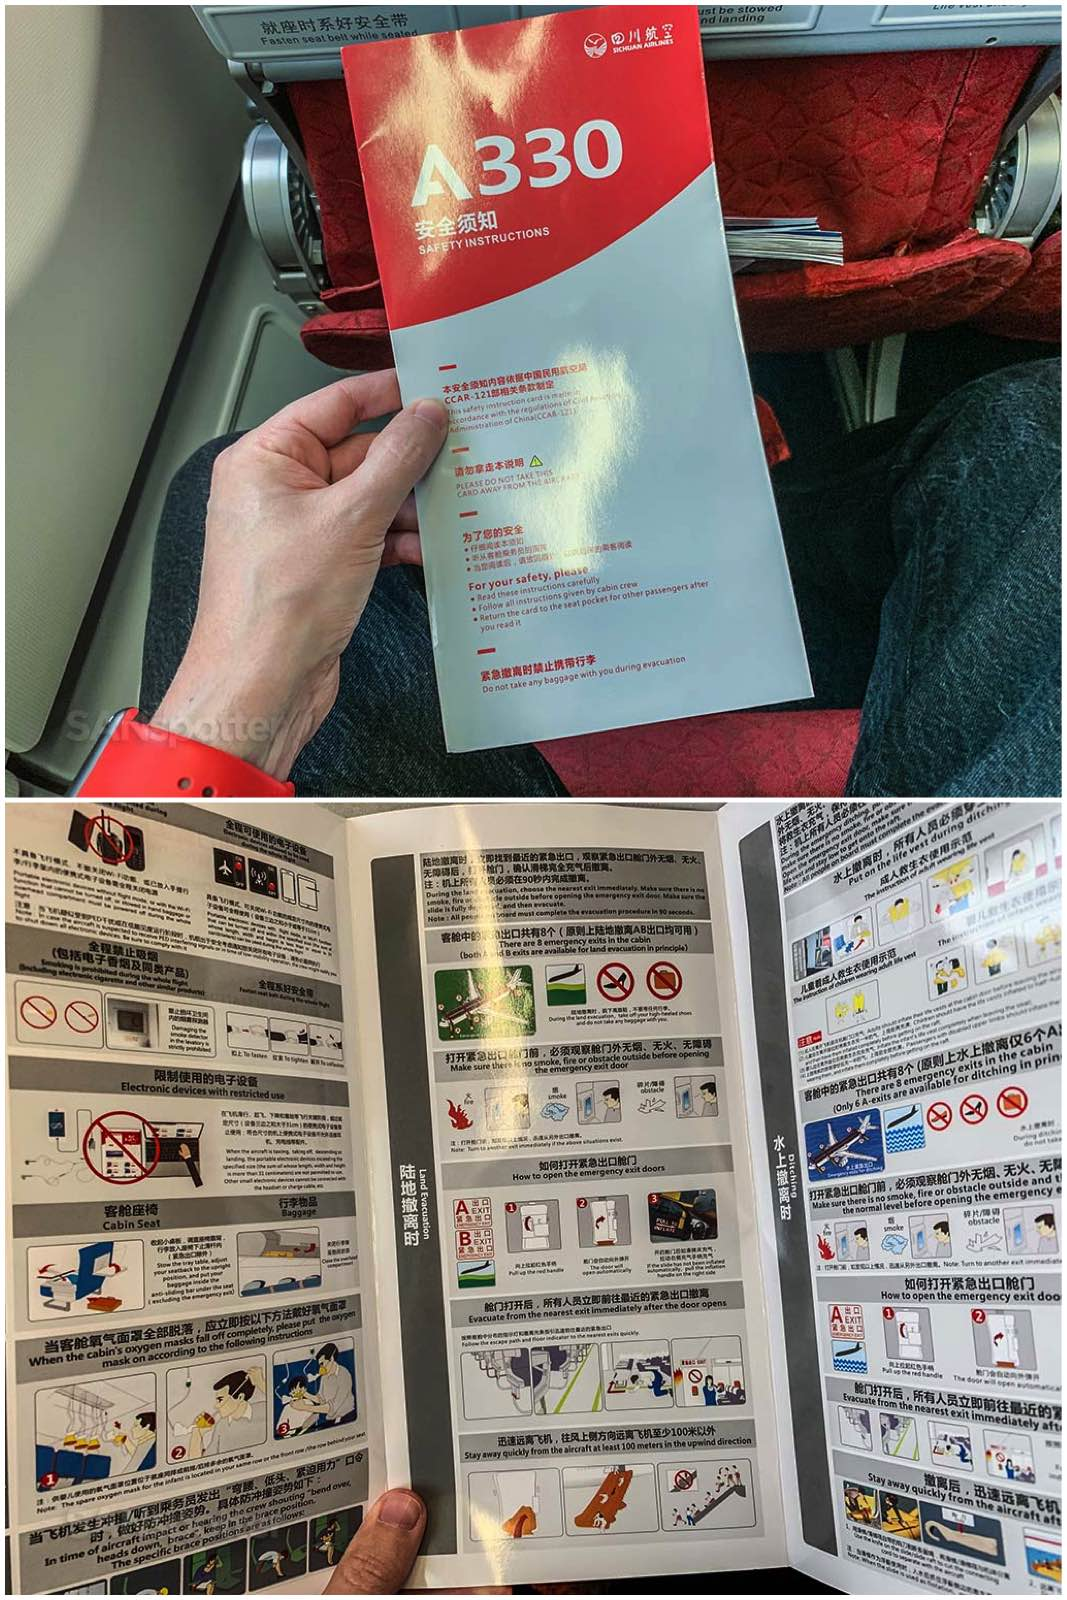 Sichuan Airlines A330-200 safety card